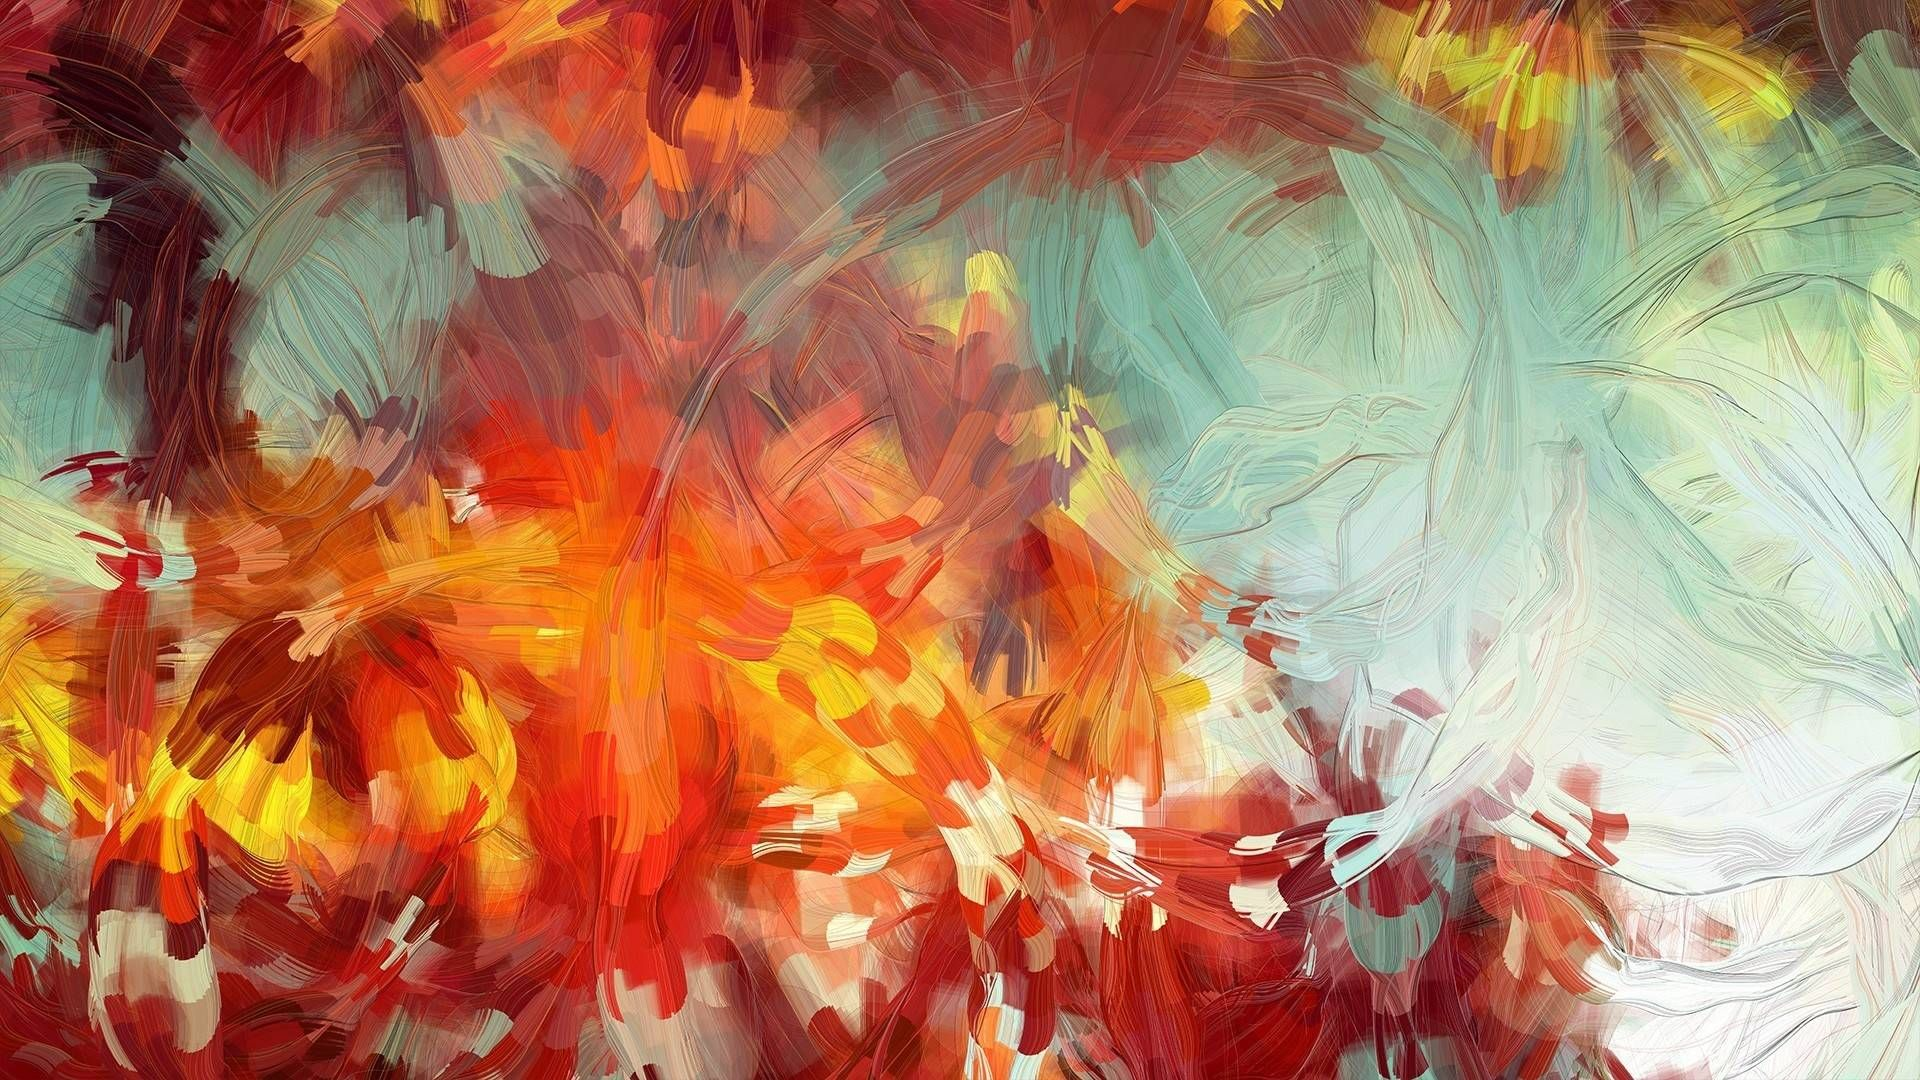 Remarkable Image For Abstract Christmas Painting Hd Wallpapers Interior Design Ideas Jittwwsoteloinfo